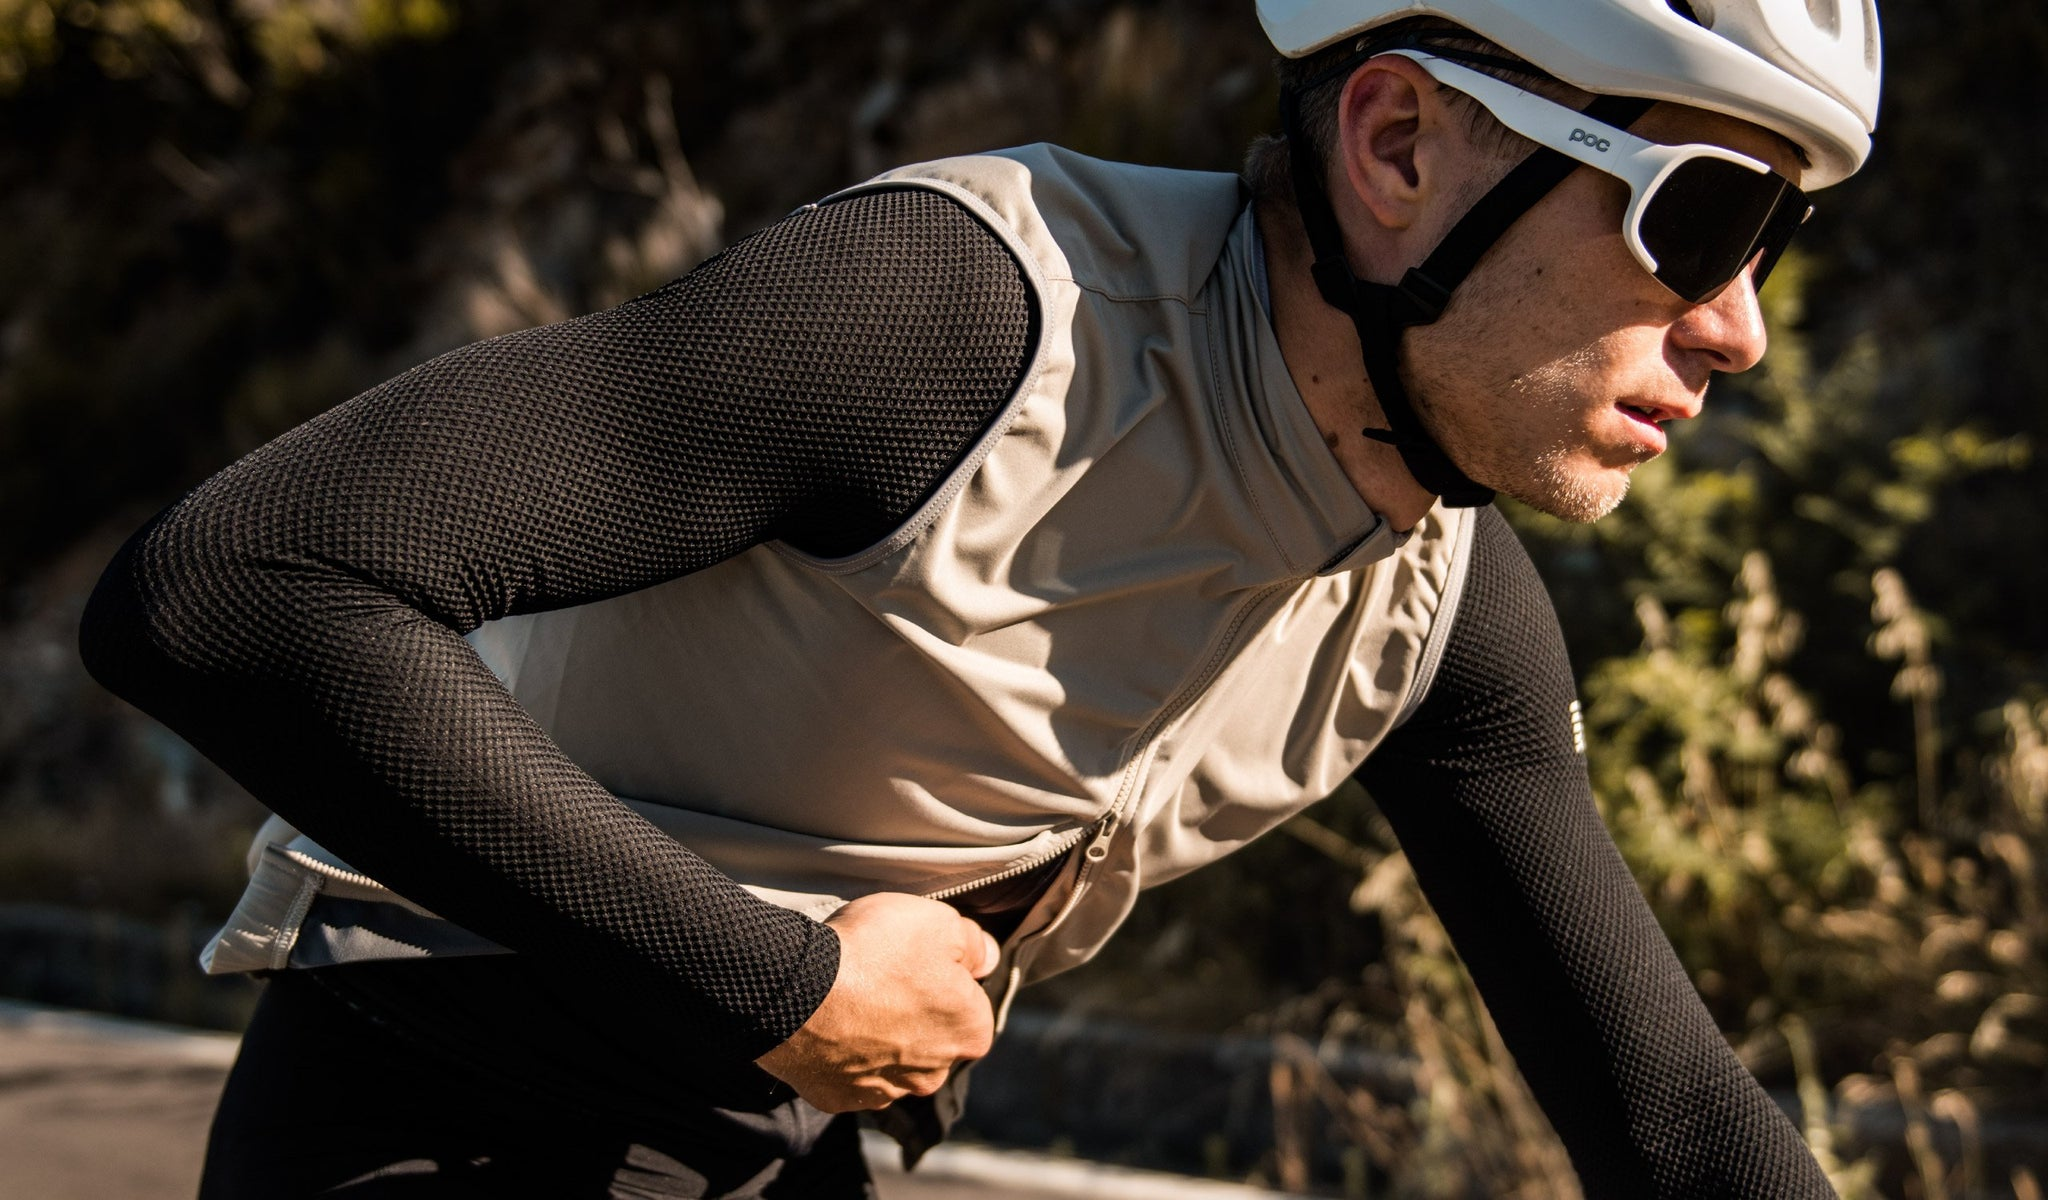 MAAP Unite Team Cycling Vest in Gravel for riding in mild conditions.